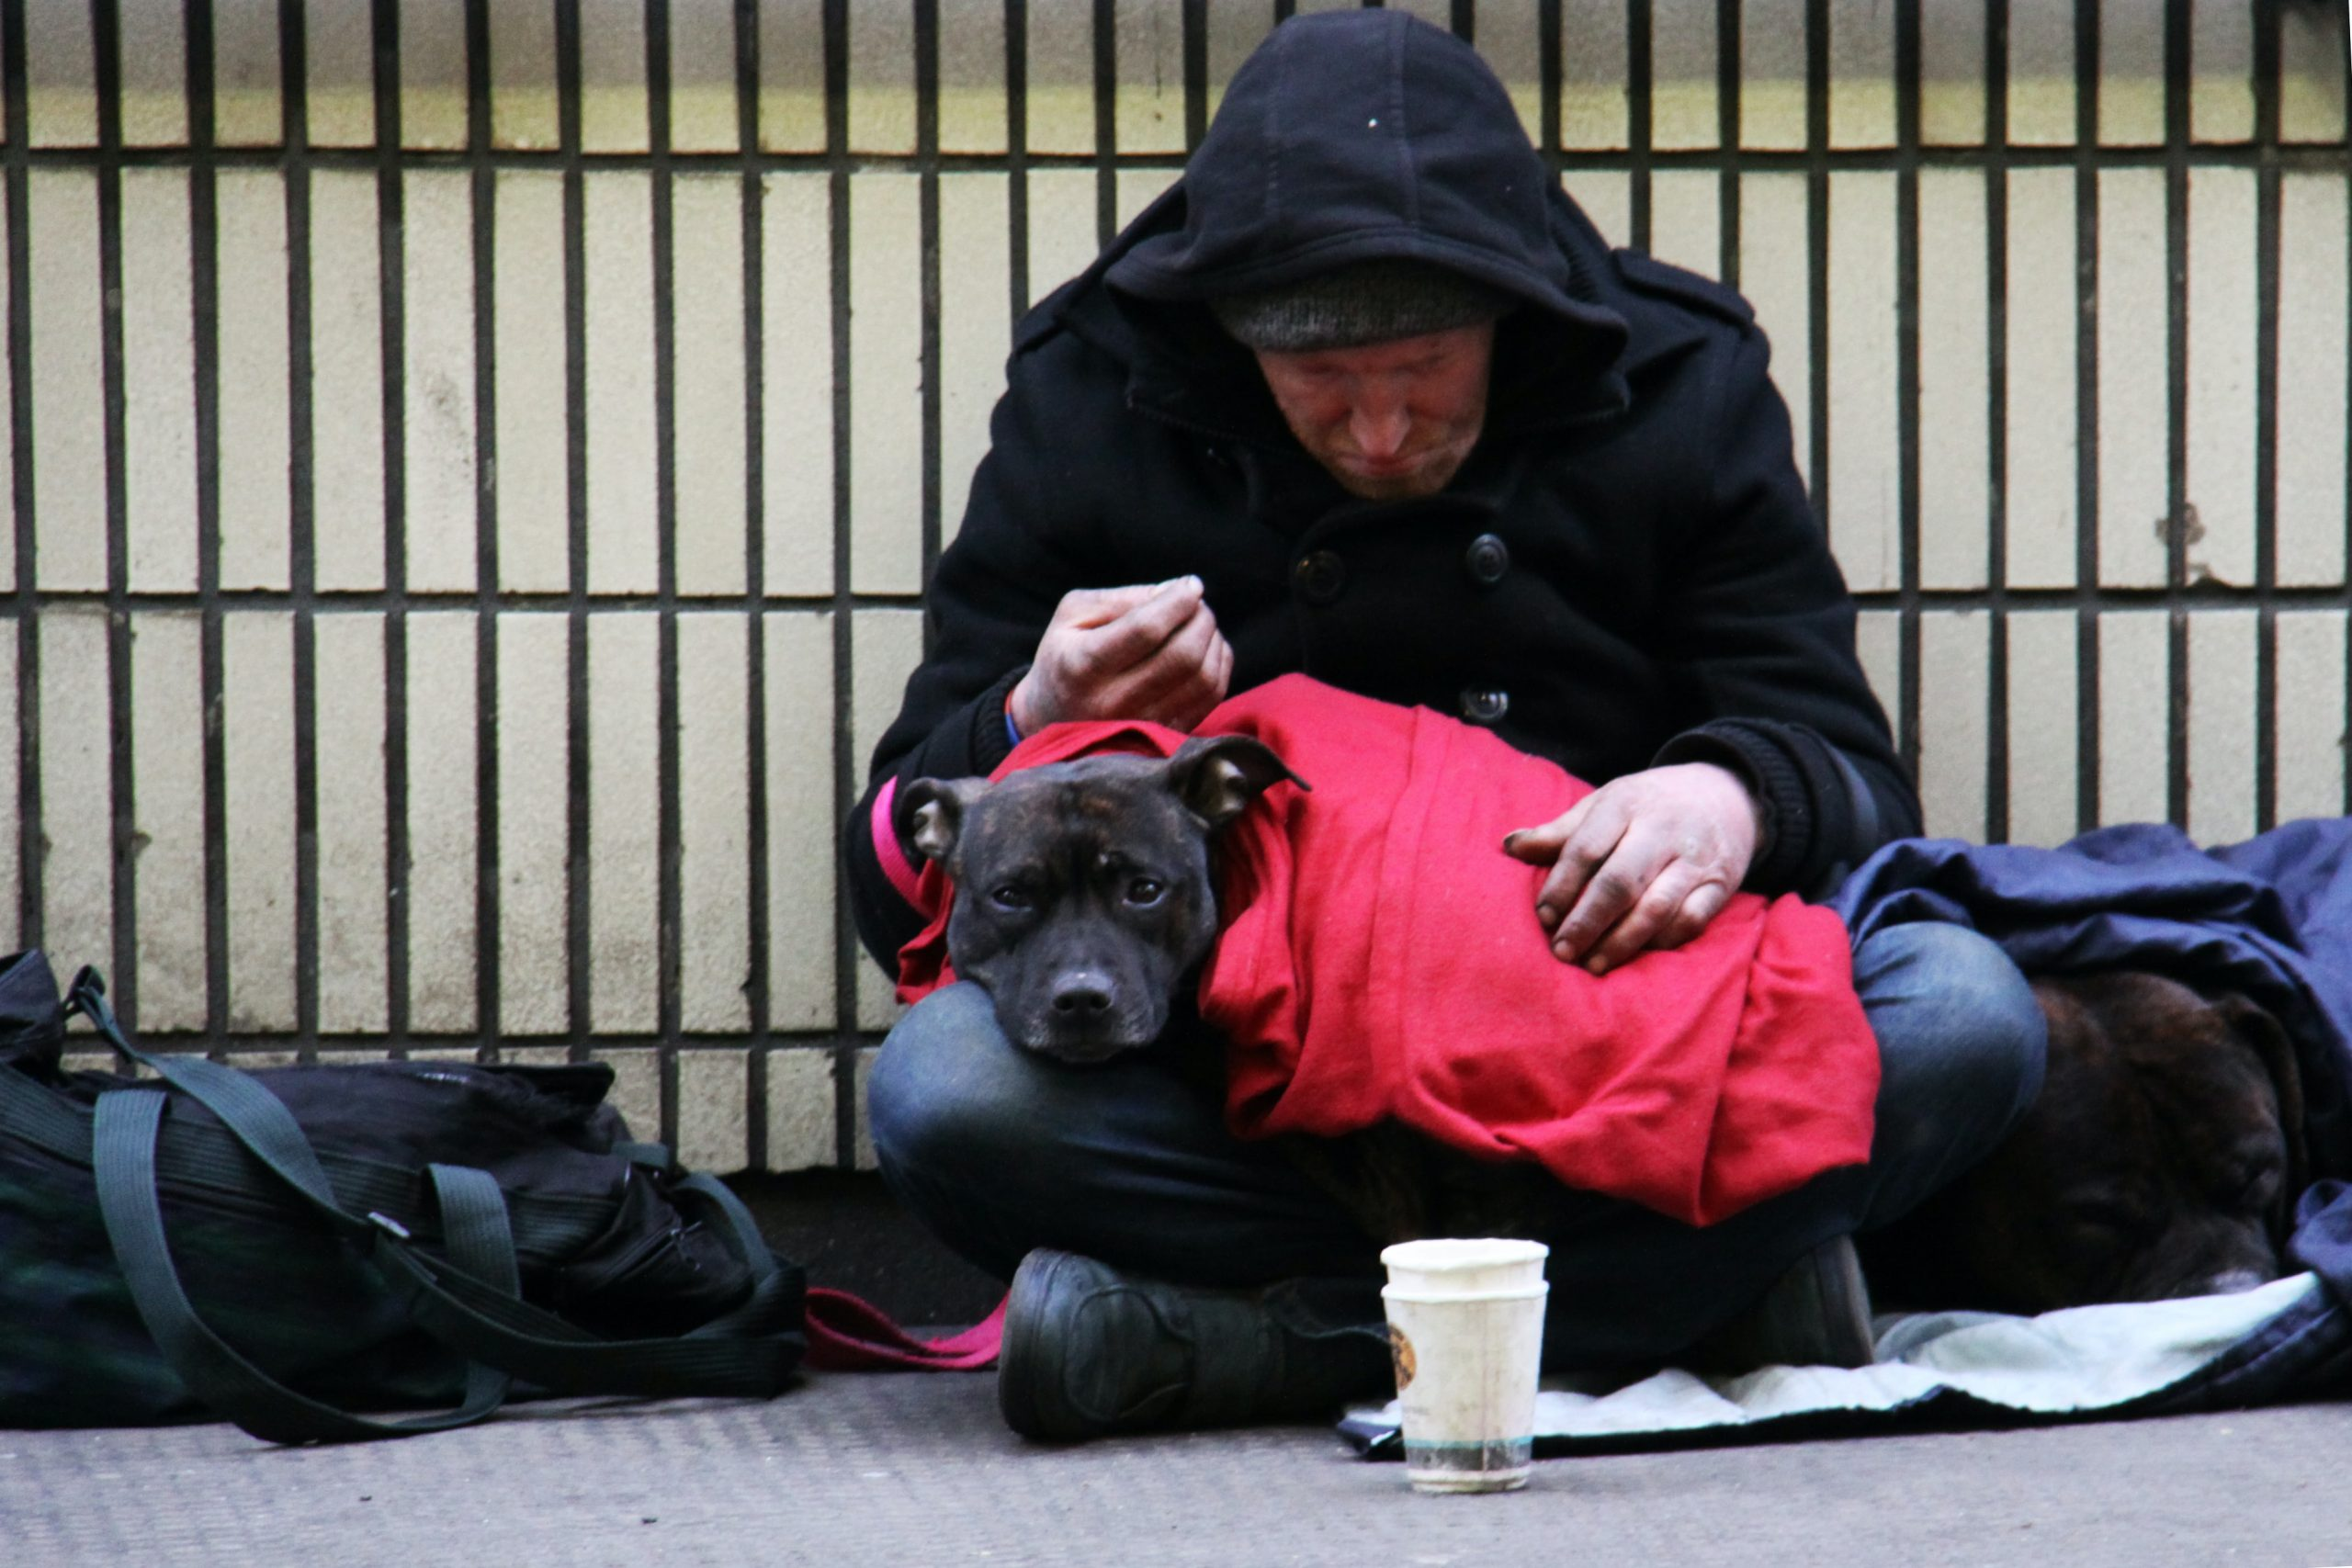 Image of a houseless man sitting in front of a fence with a black dog in his lap